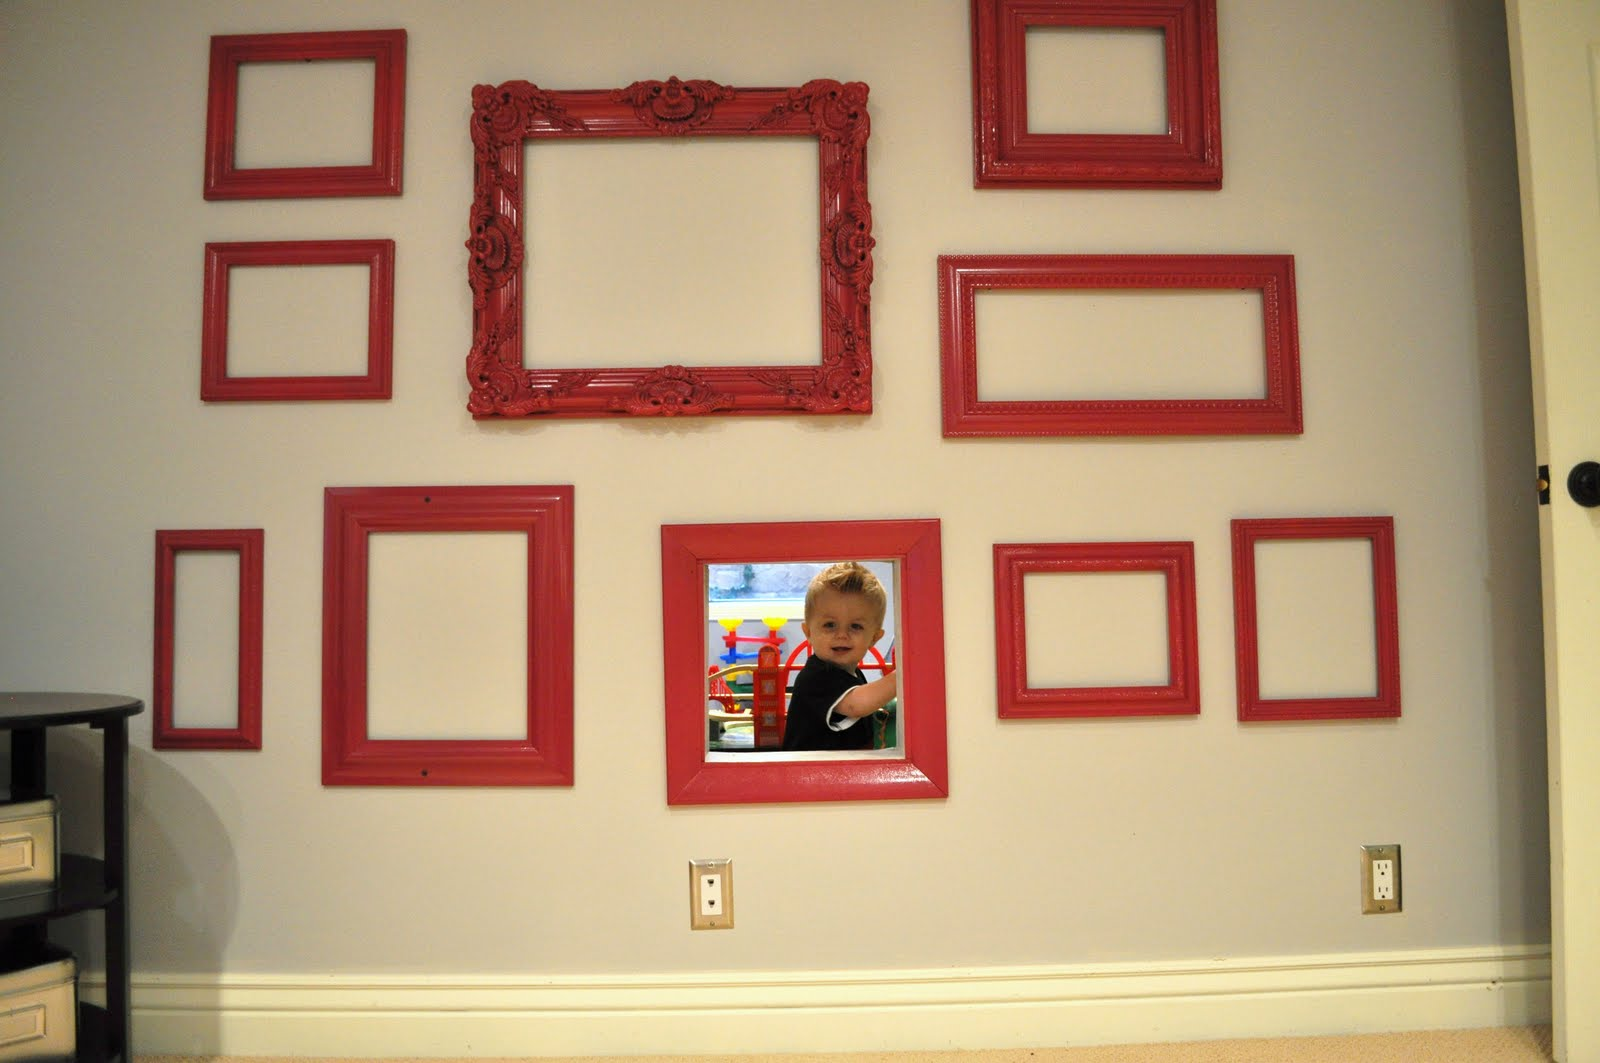 resolve to finally getting something up on the wall - here an inexpensive collage is started with just one photo